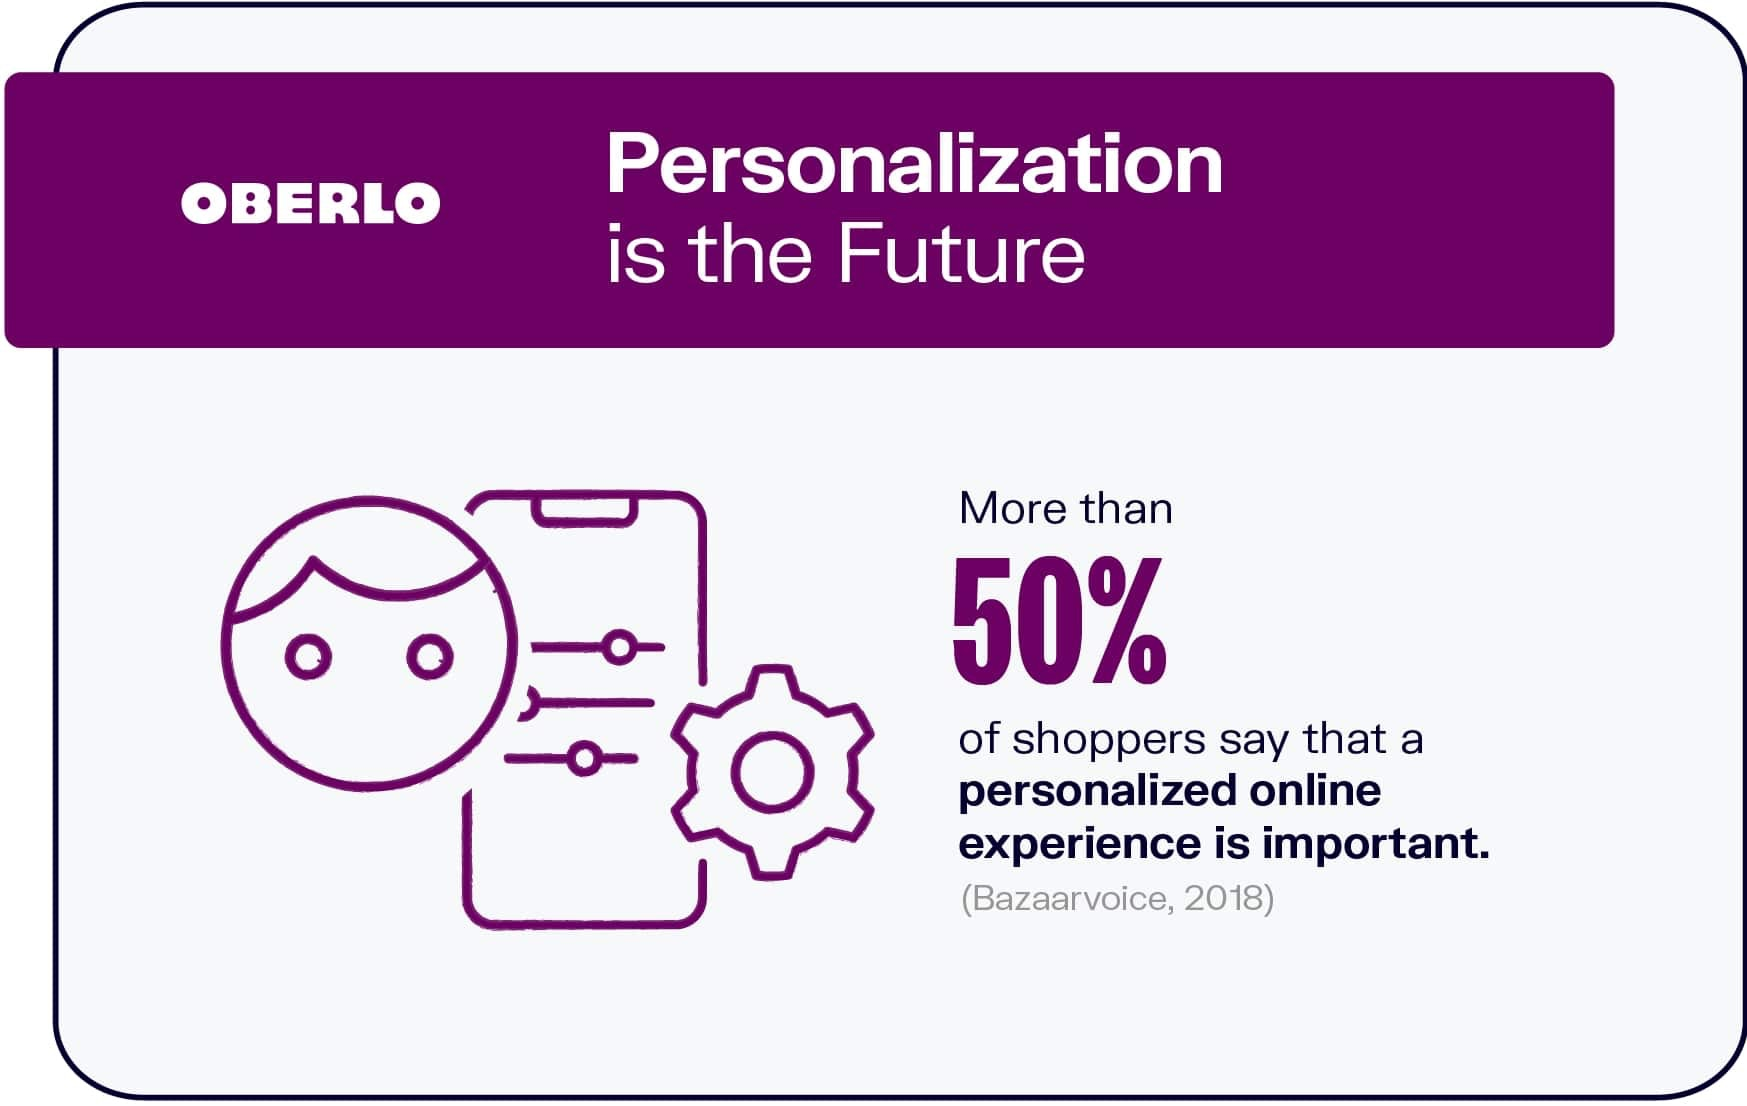 Personalization is the Future